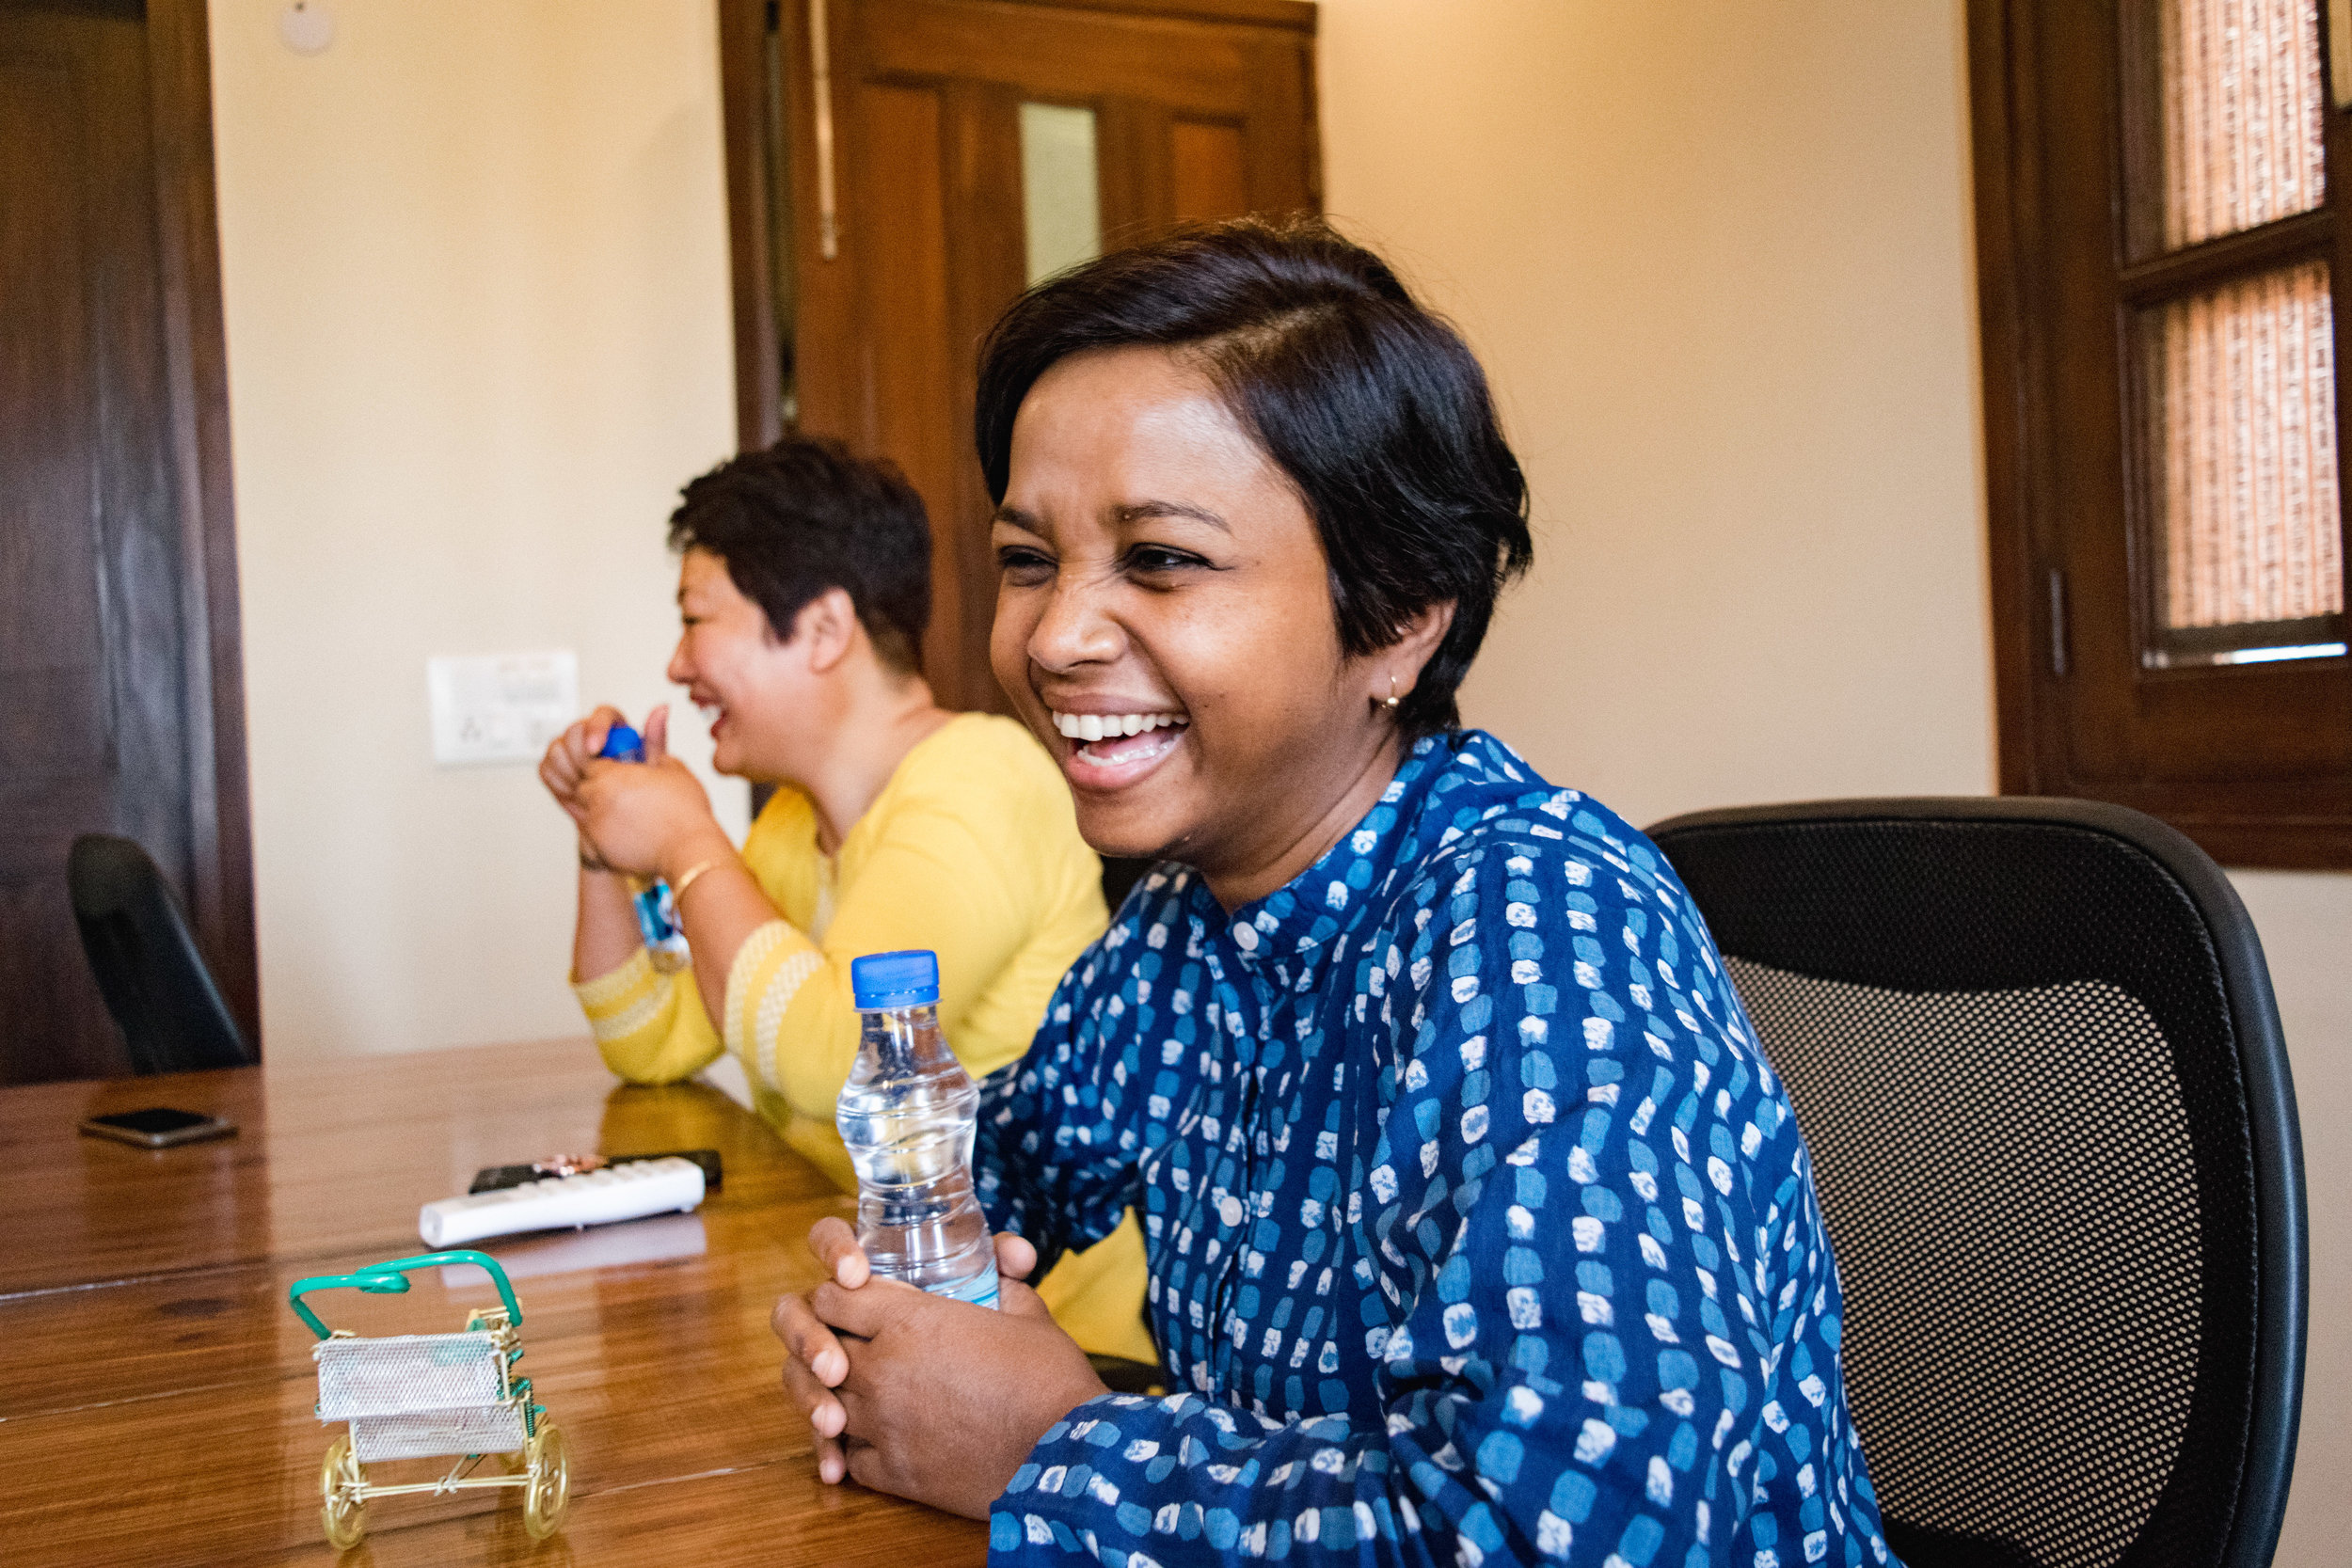 """All of our staff are involved in the facilitation of our weekly time of fellowship. Manohar wrote, """"Each one of us have taken up this responsibility willingly and give 100% to ensure we have everything ready for the gatherings."""" Sneha, pictured above, welcomes new attendees, ensuring they feel comfortable and at home."""